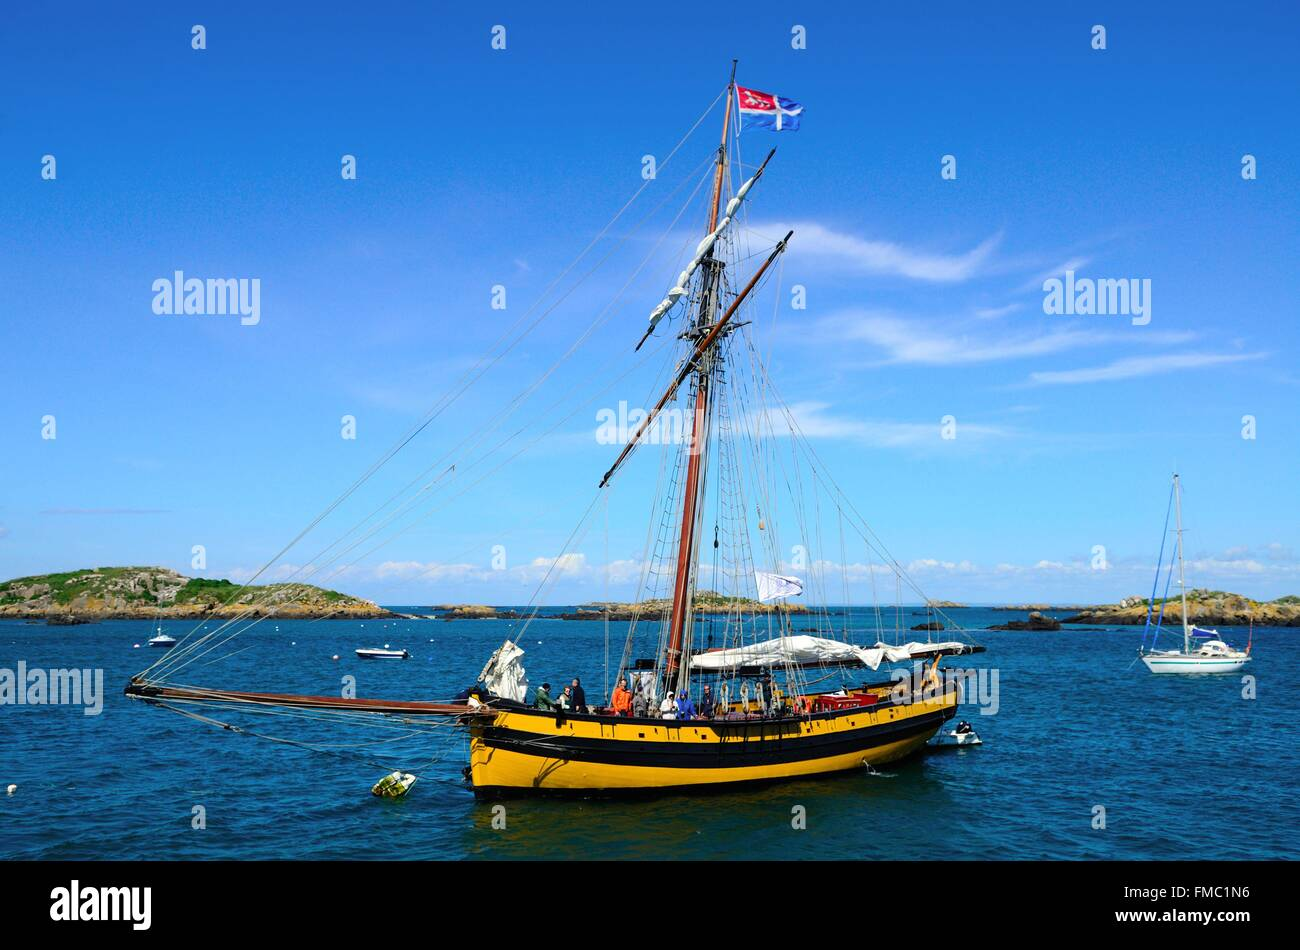 France, Manche, Chausey islands, the anchored Renard - Stock Image